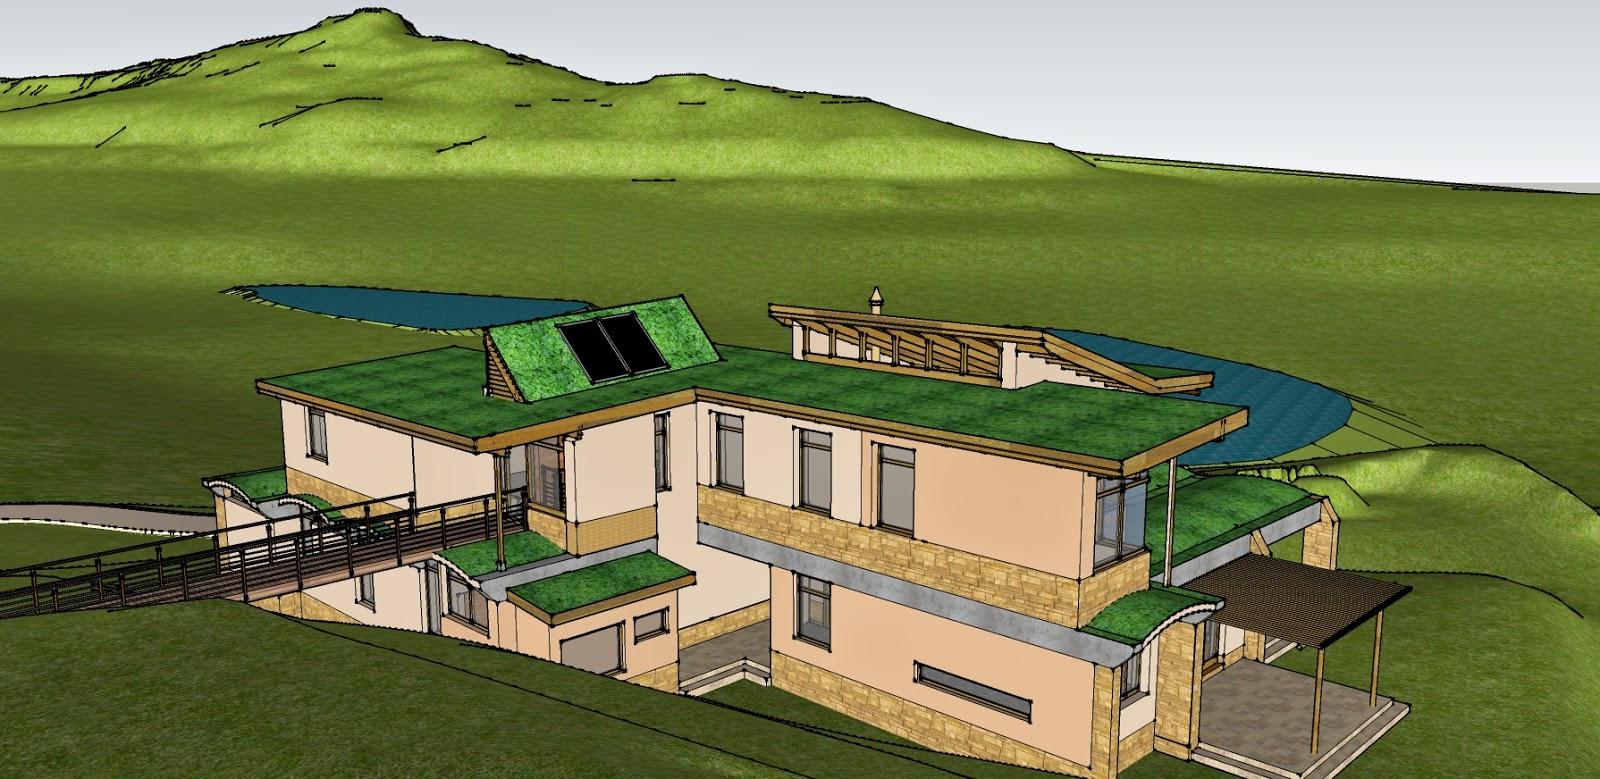 Daily Learning Architecture: House Boetes Paarl Project on bedrooms house designs, wall house designs, vaulted ceiling house designs, hill house designs, look at house designs, layer house designs, open house designs, construction house designs, landscaping house designs, two story house designs, roof house designs, amazing pool house designs, green house designs, great room house designs, corner house designs, ranch house designs, architectural house designs, log house designs, interior house designs, square house designs,